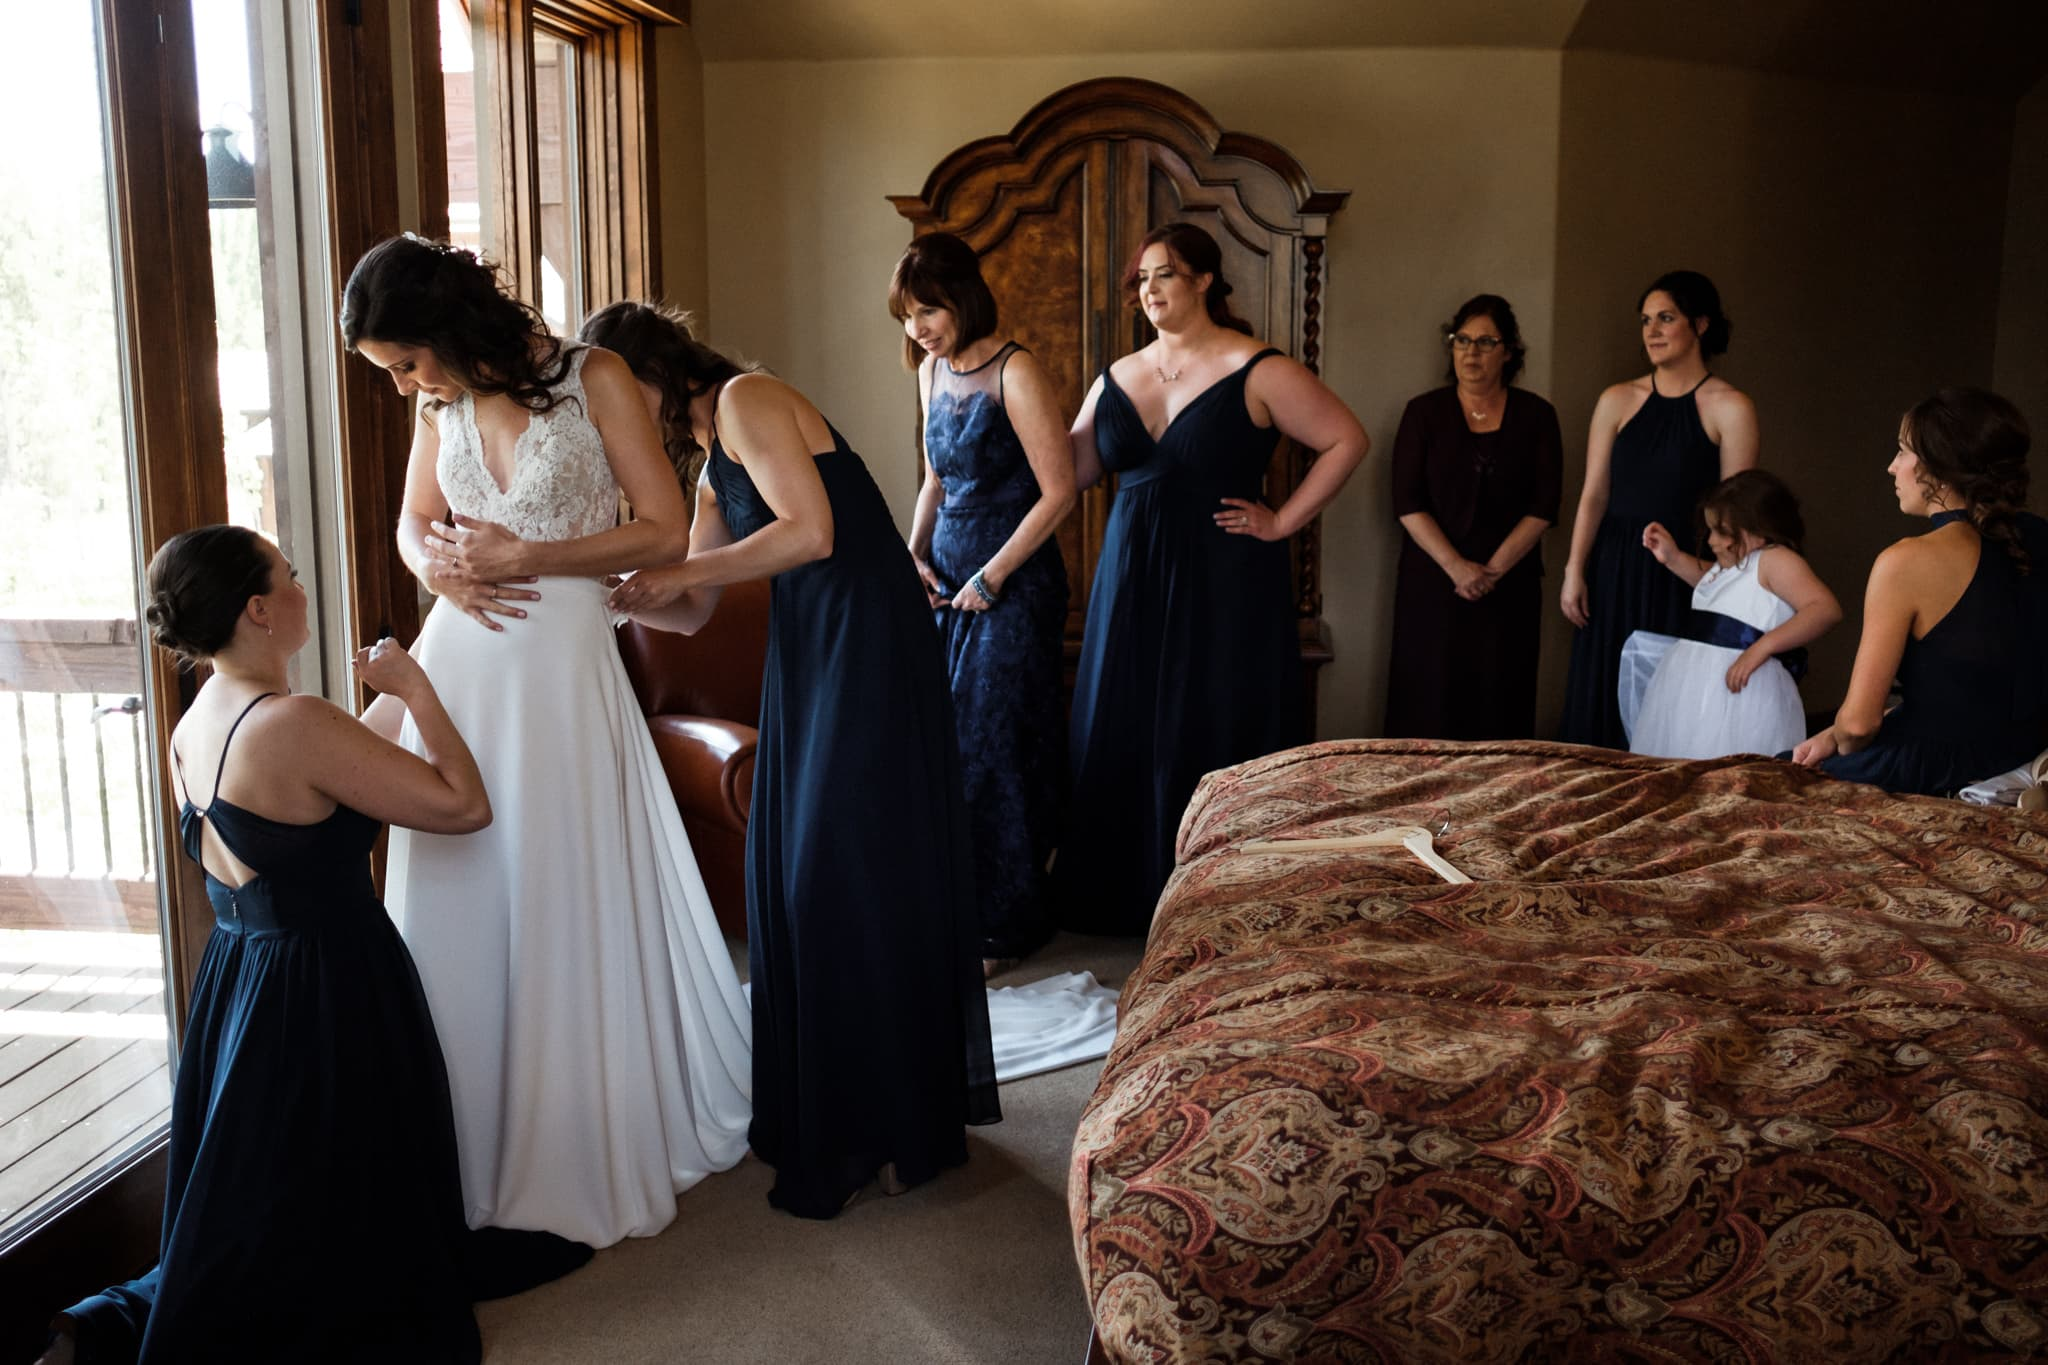 Bride surrounded by bridesmaids while getting ready, Breckenridge wedding photographer Colorado